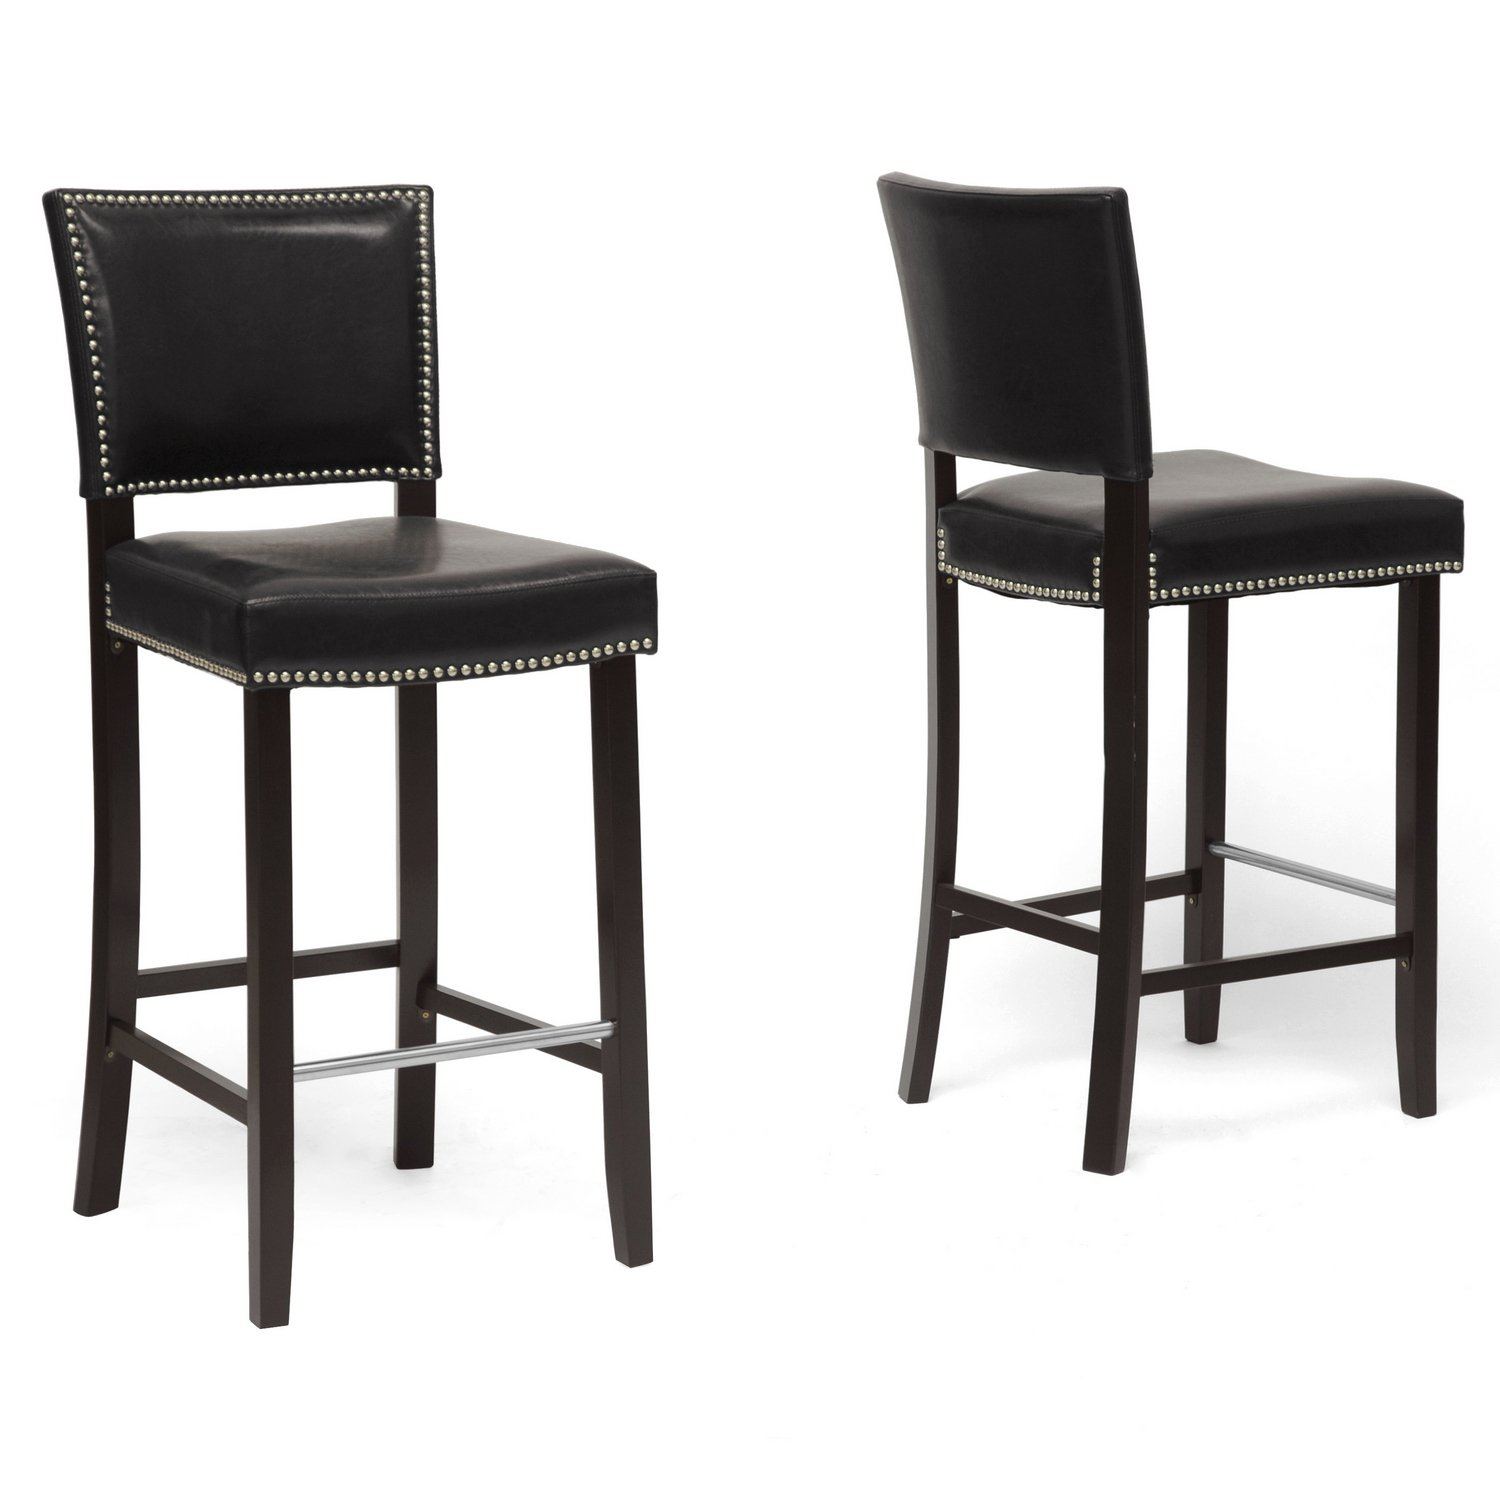 Amazon.com Baxton Studio Aries Modern Bar Stool with Nail Head Trim White Set of 2 Kitchen \u0026 Dining  sc 1 st  Amazon.com & Amazon.com: Baxton Studio Aries Modern Bar Stool with Nail Head ... islam-shia.org